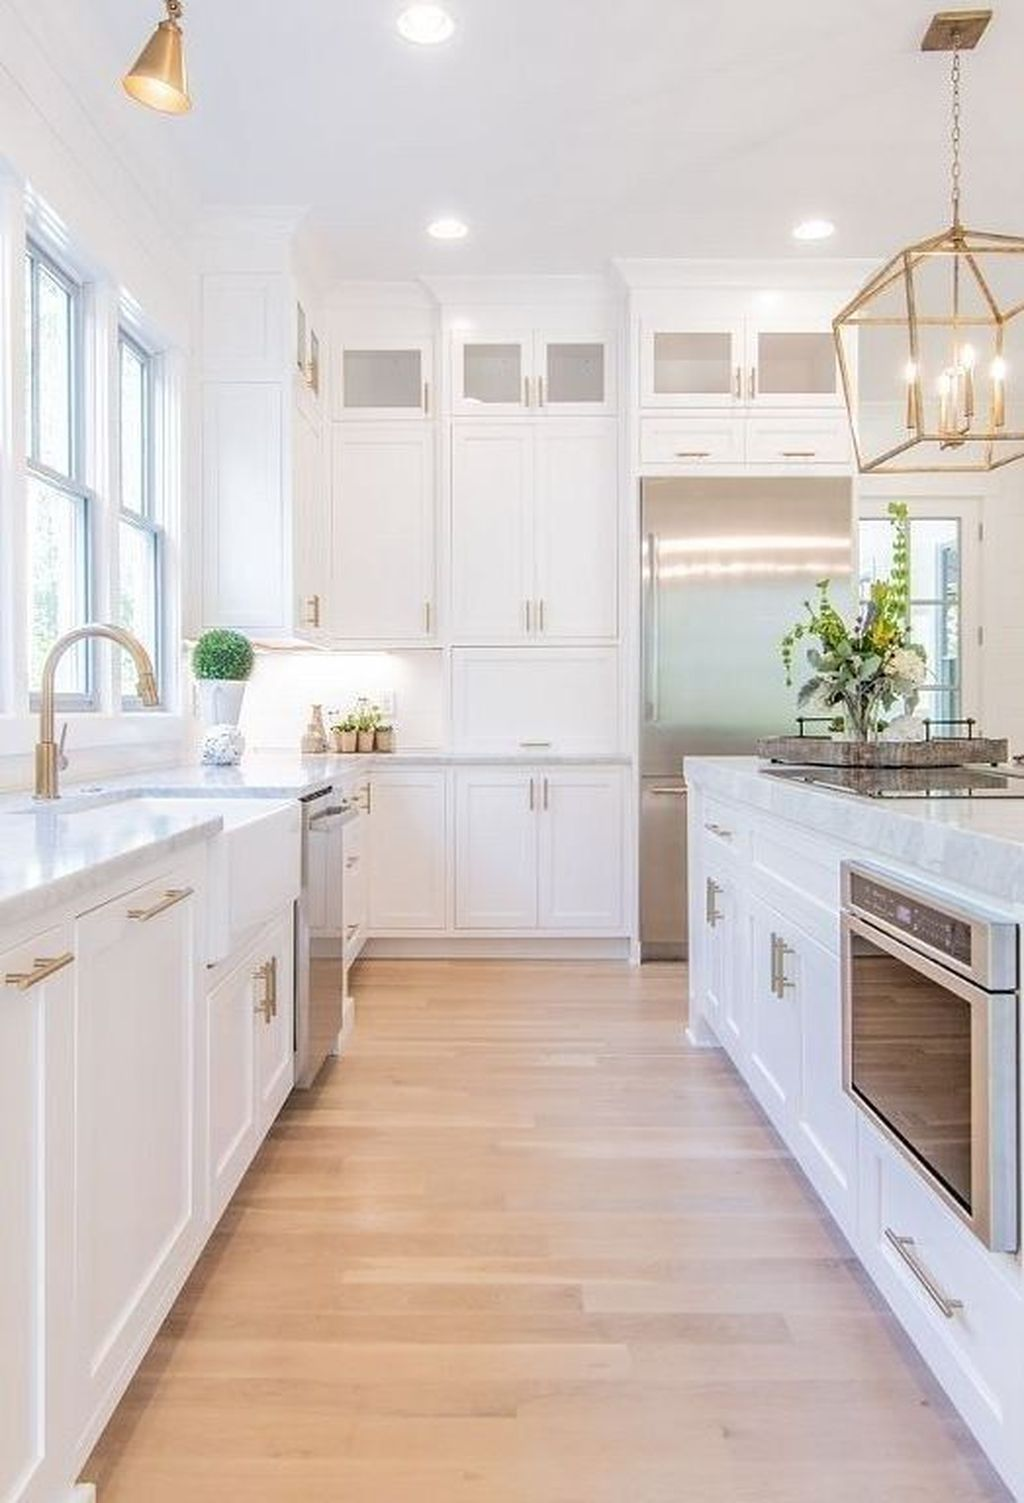 32 Newest White Kitchen Design Ideas For A Clean And Bright Kitchen